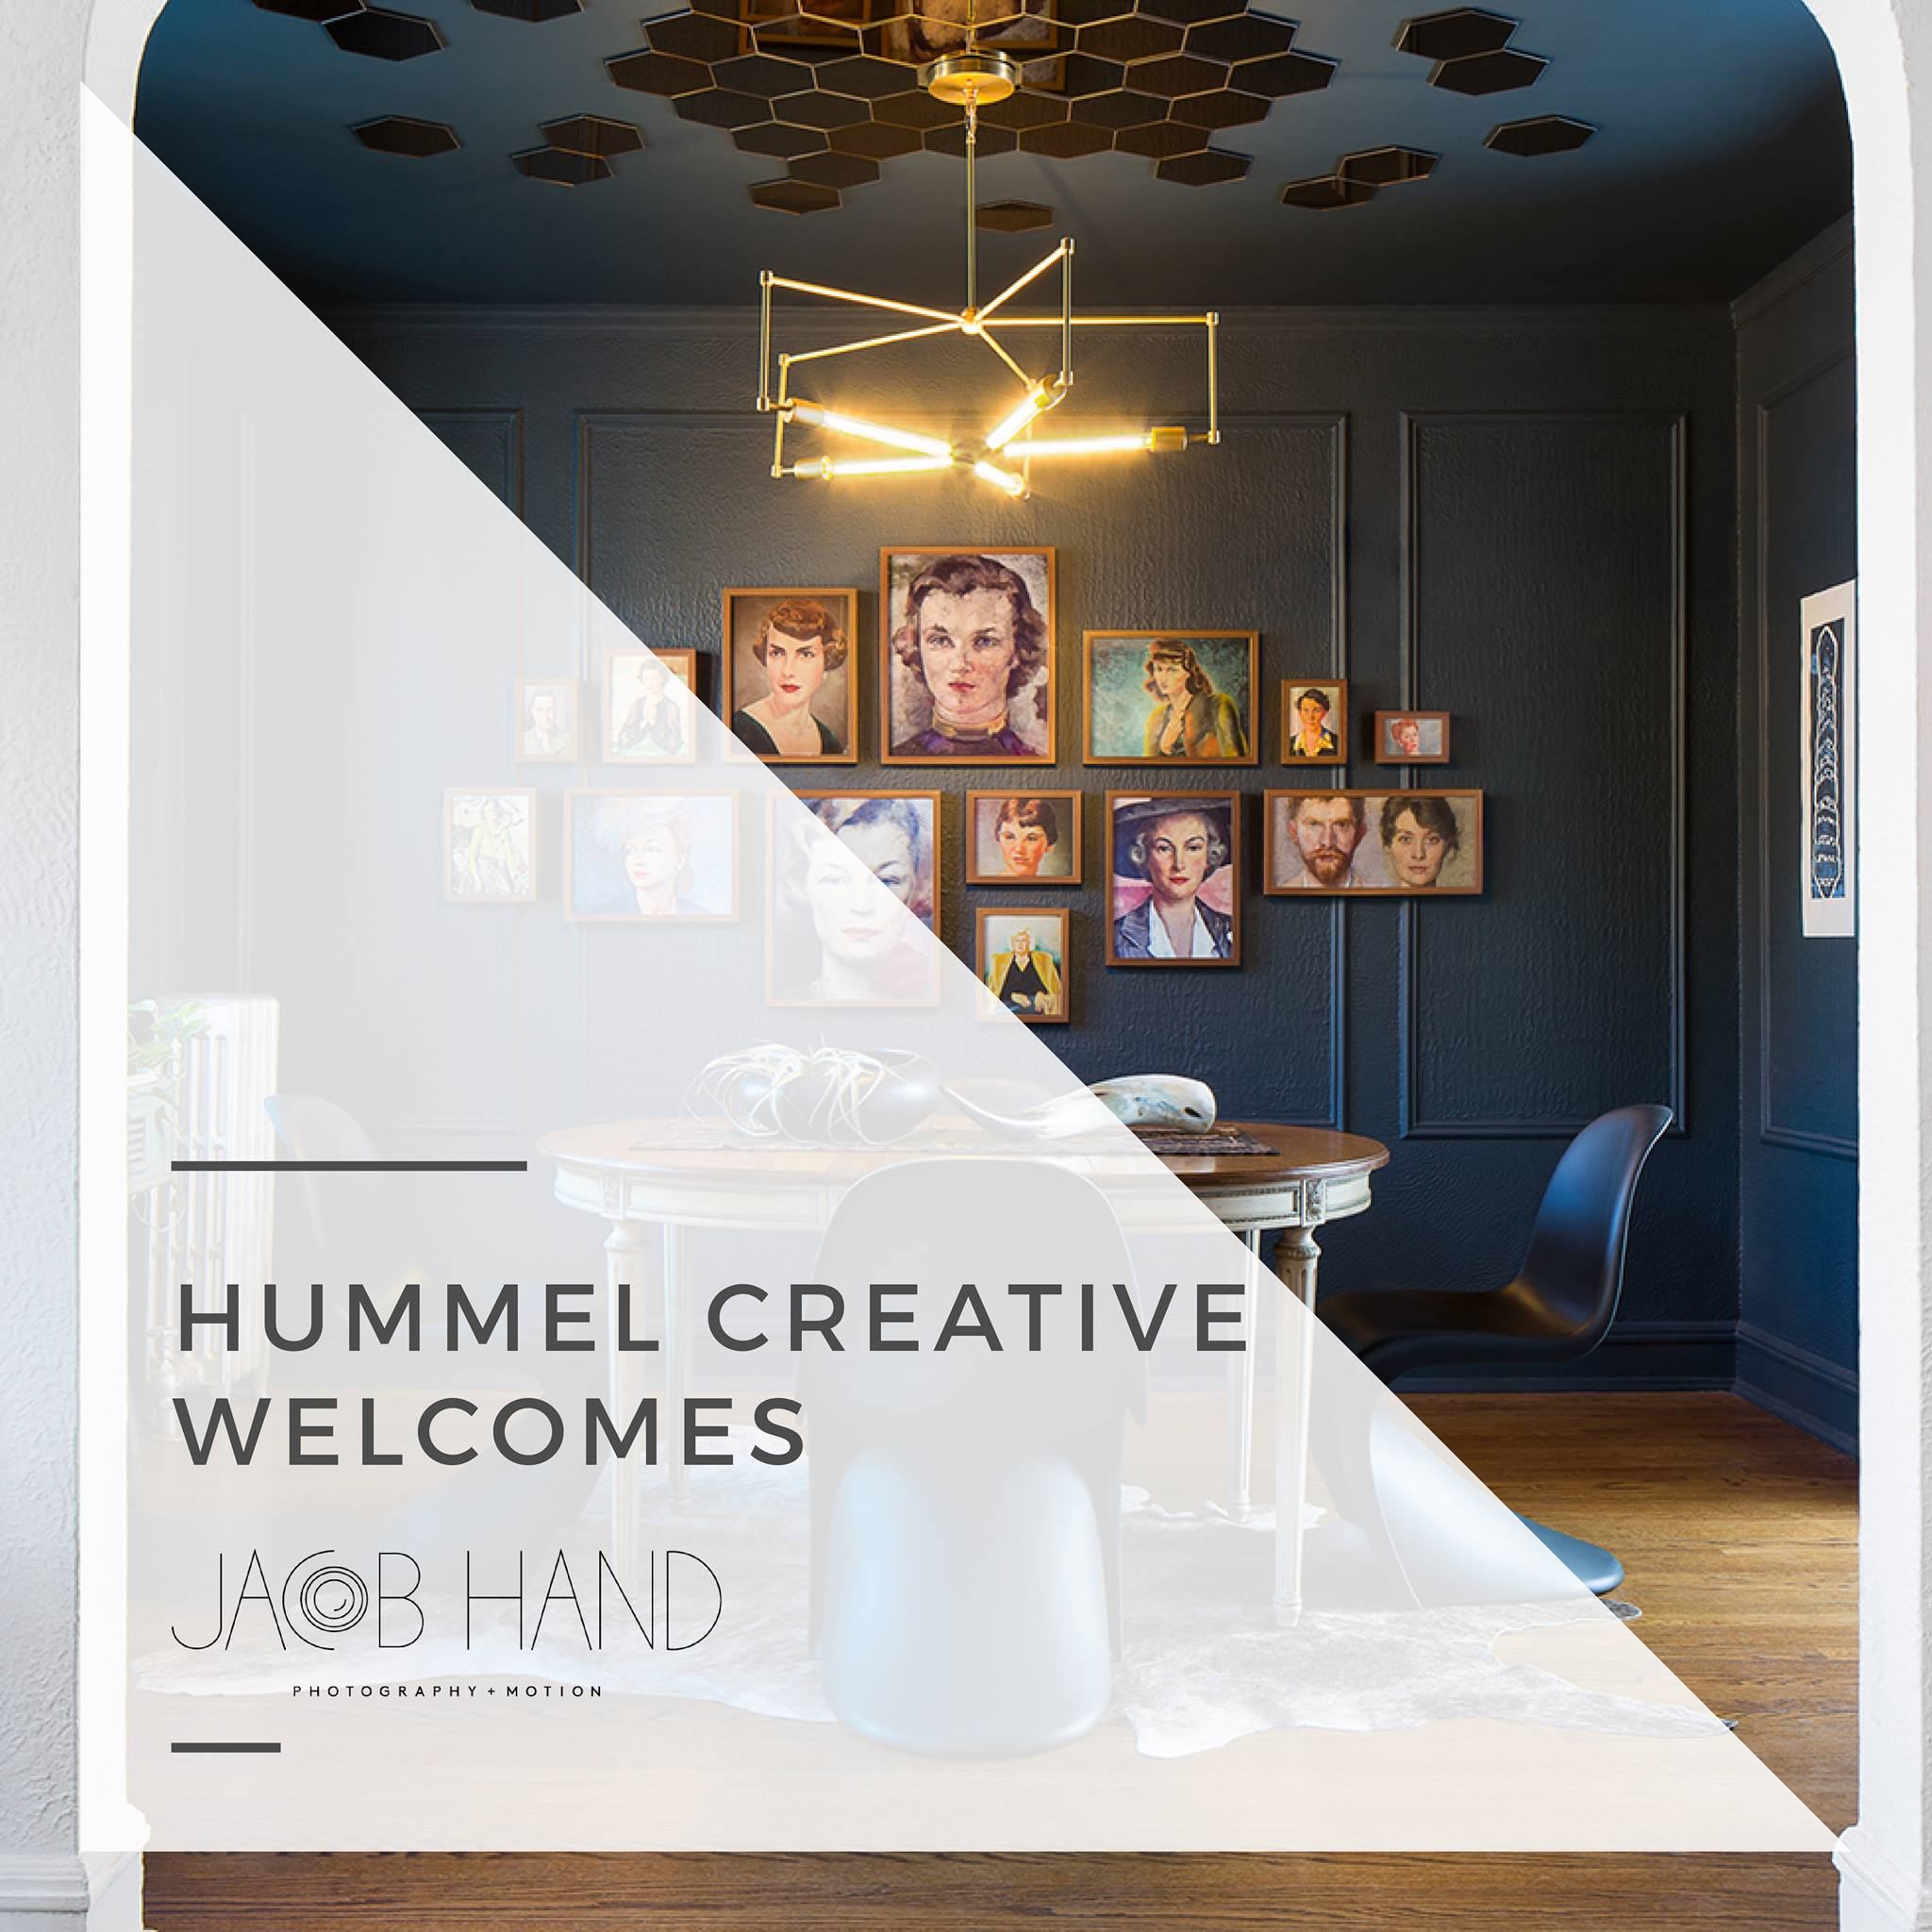 Jacob Hand joins Hummel Creative